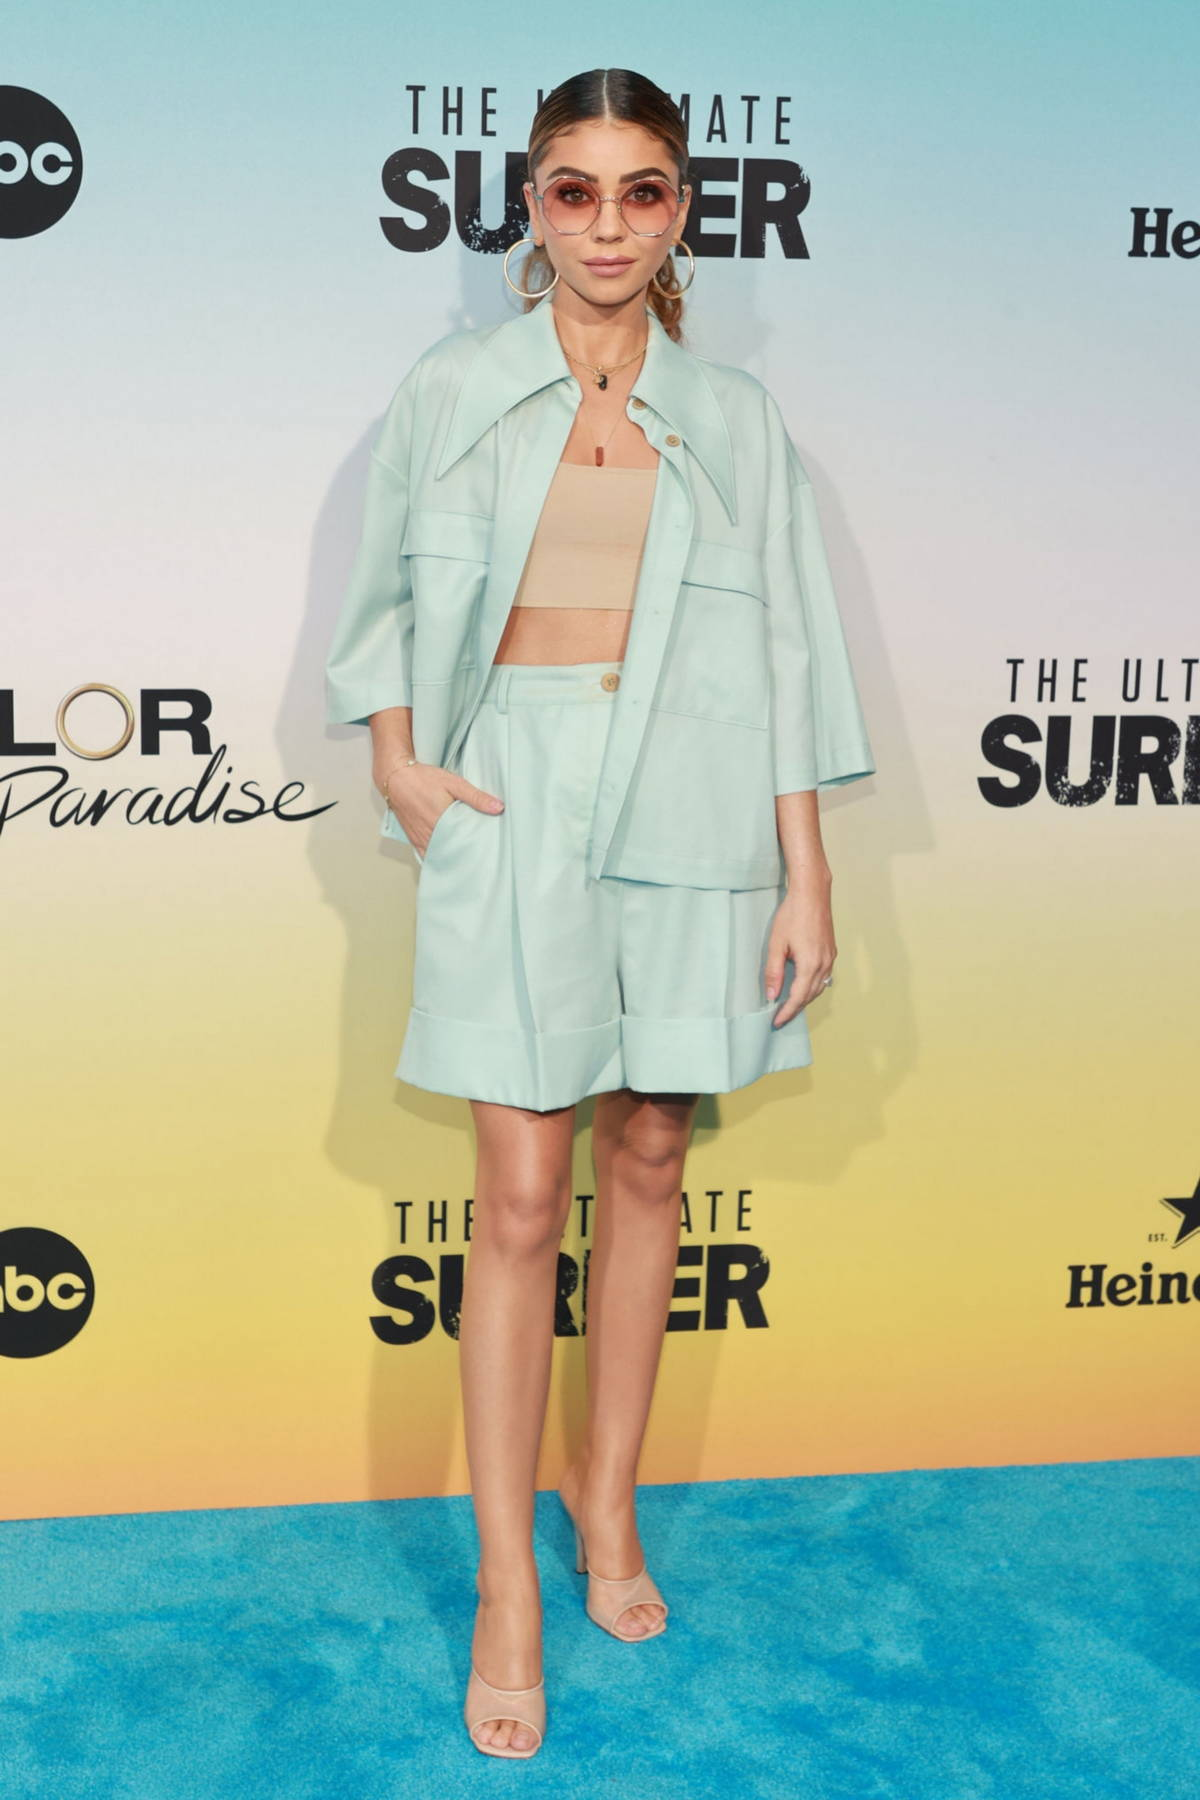 """Sarah Hyland attends ABC's """"Bachelor In Paradise"""" And """"The Ultimate Surfer"""" Premiere in Santa Monica, California"""